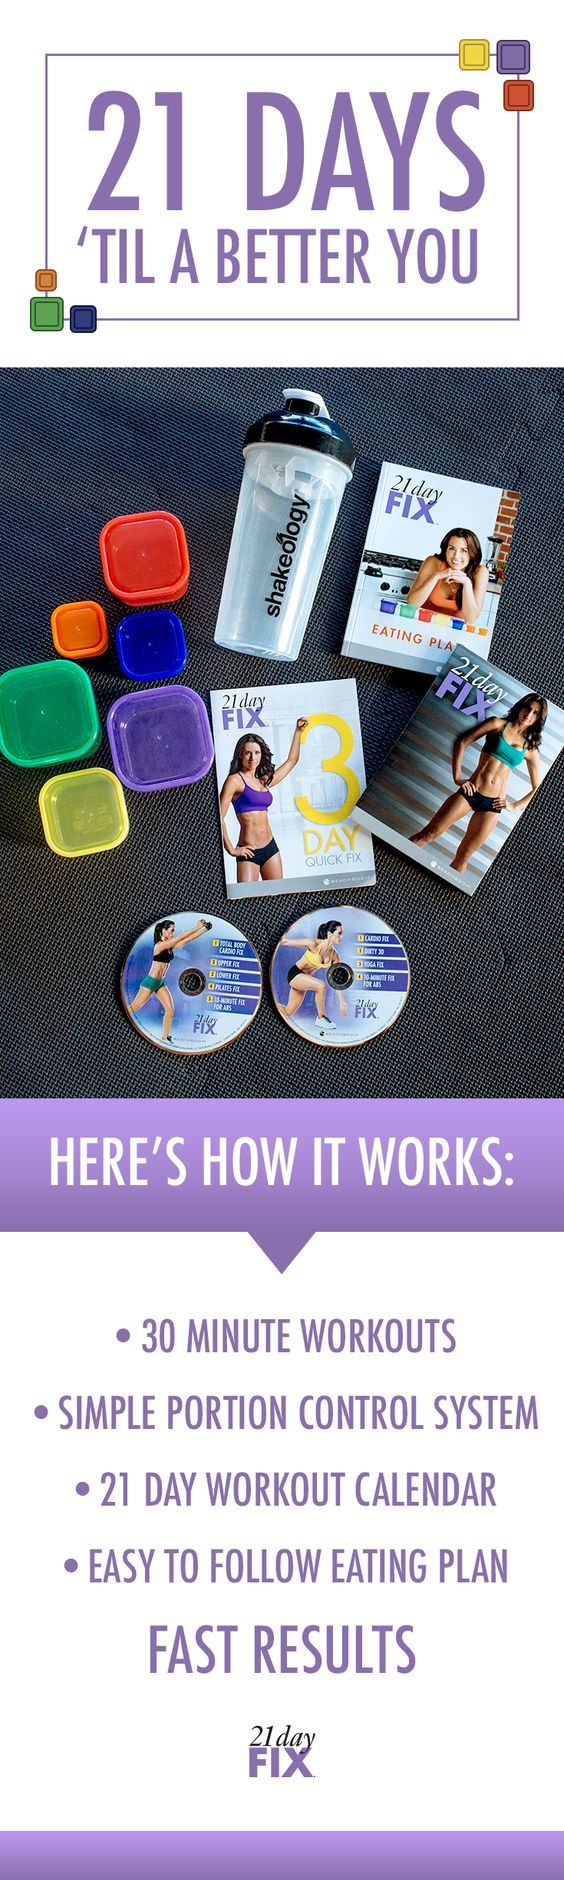 Want to look and feel your best in 21 days? With 21 Day Fix®, our healthy eating tips, plus short 30-minute workouts are everything you need to get on track!